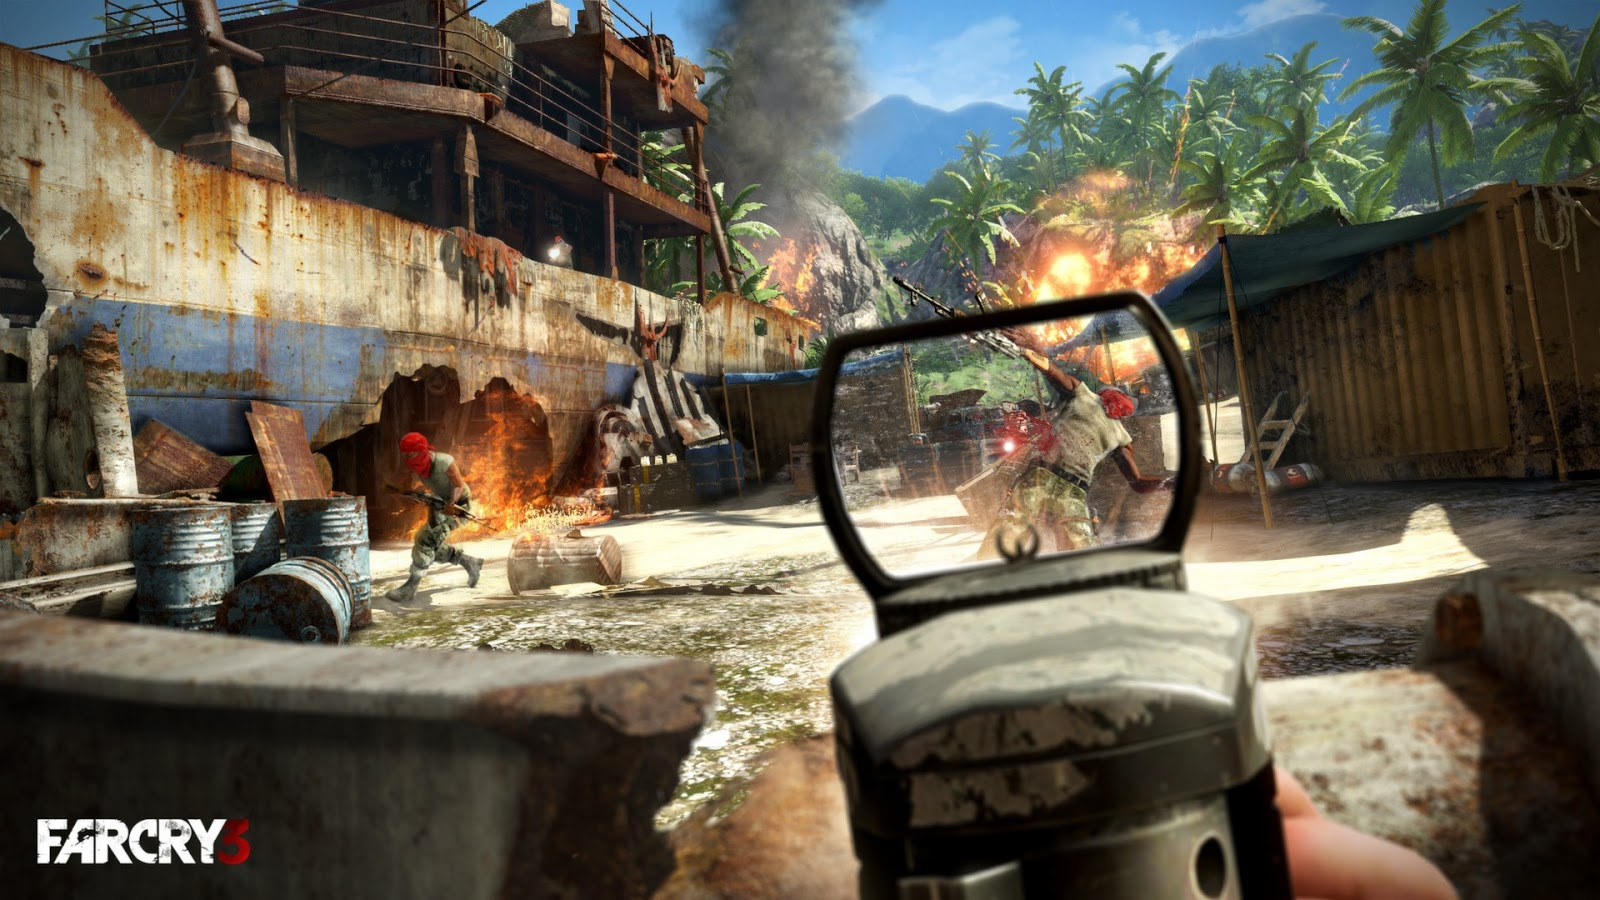 far cry 3 download free for pc